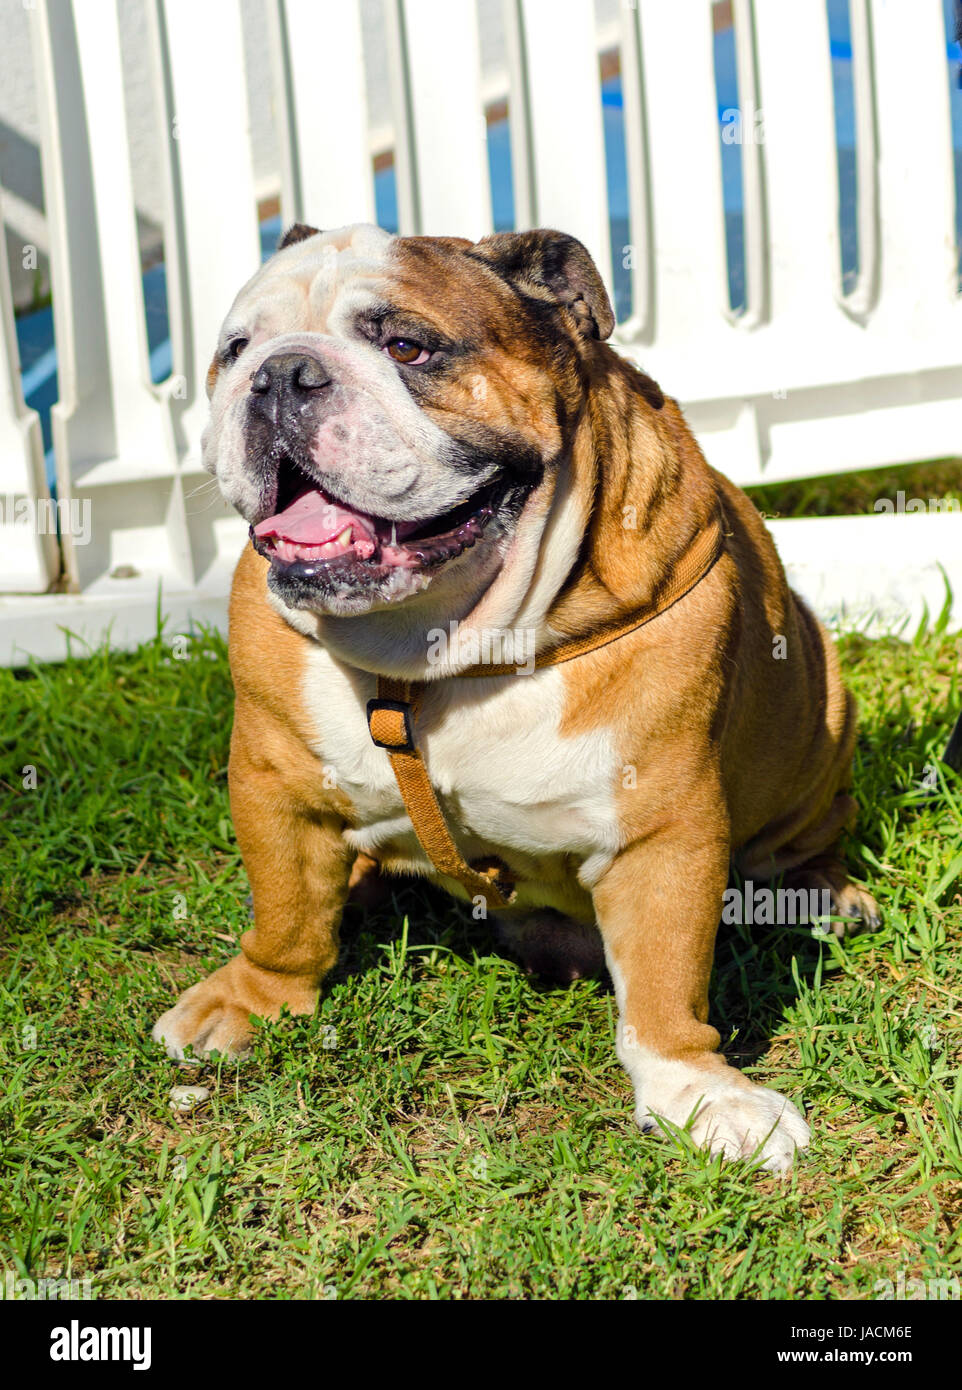 A small, young, beautiful, brown and white English Bulldog sitting on the lawn while sticking its tongue out and Stock Photo